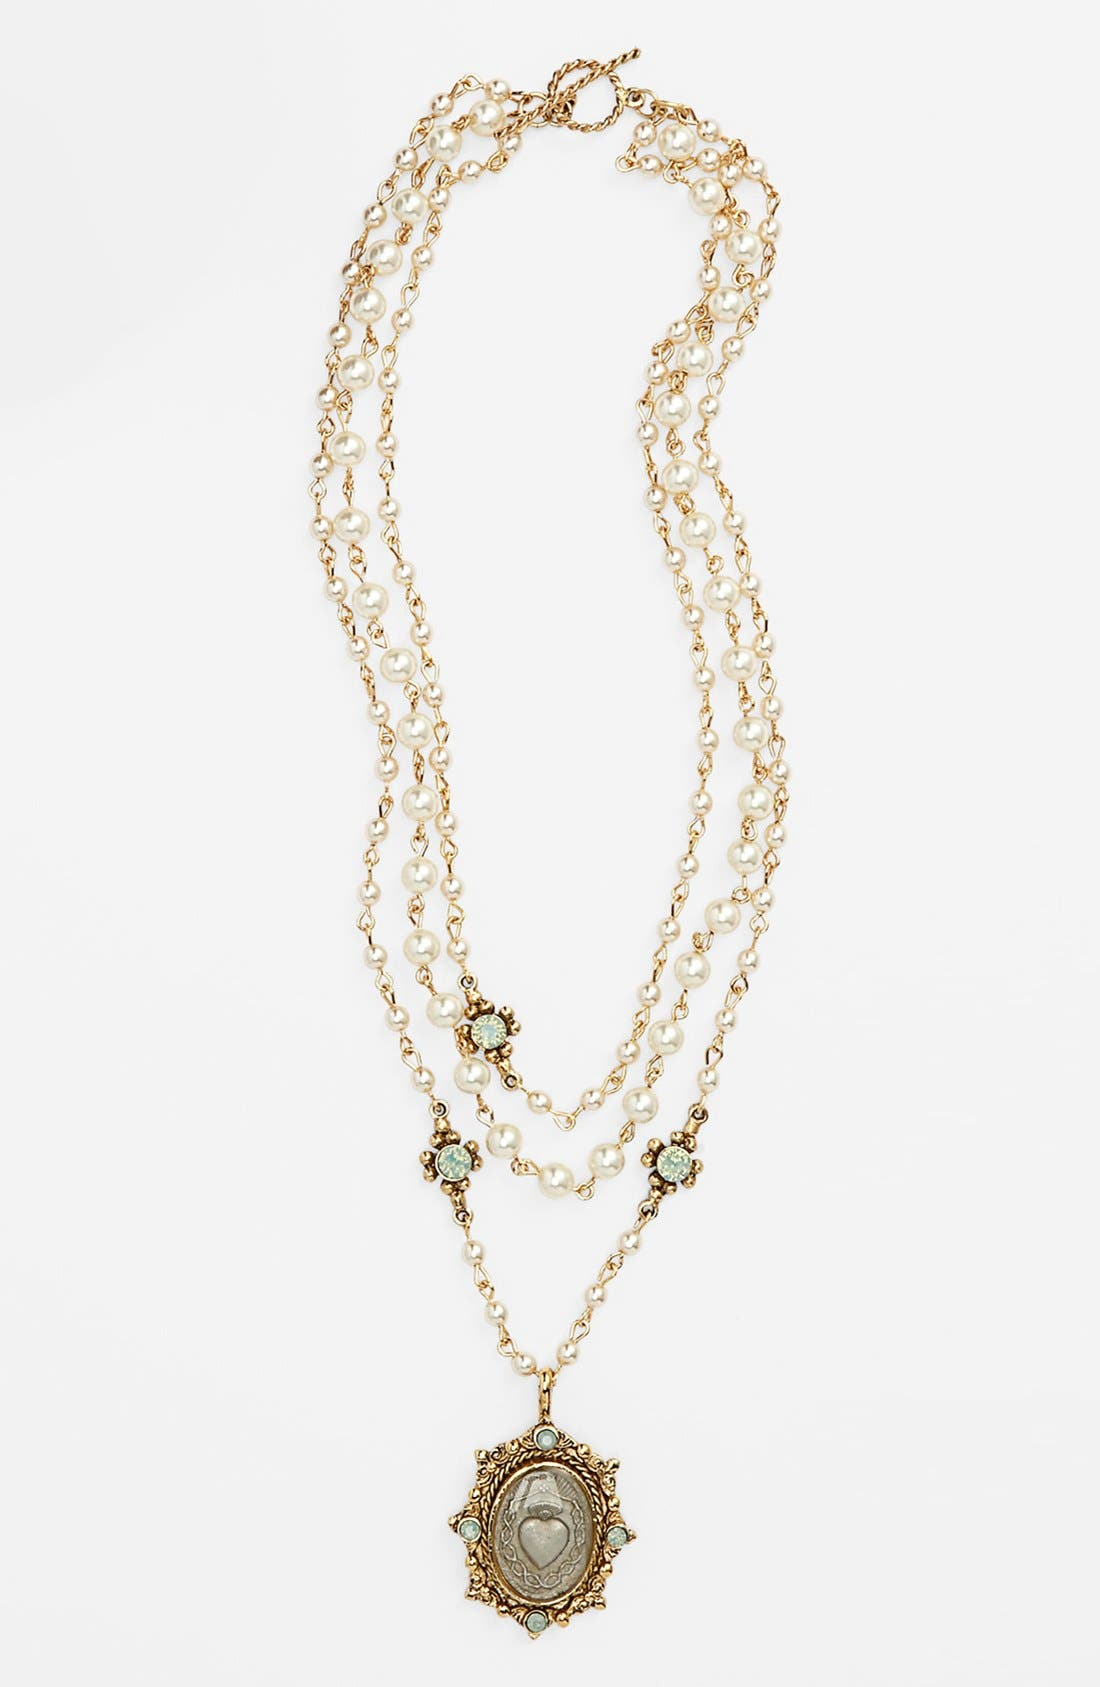 Alternate Image 1 Selected - Virgins Saints & Angels 'Oval Magdalena' Necklace (Nordstrom Exclusive)